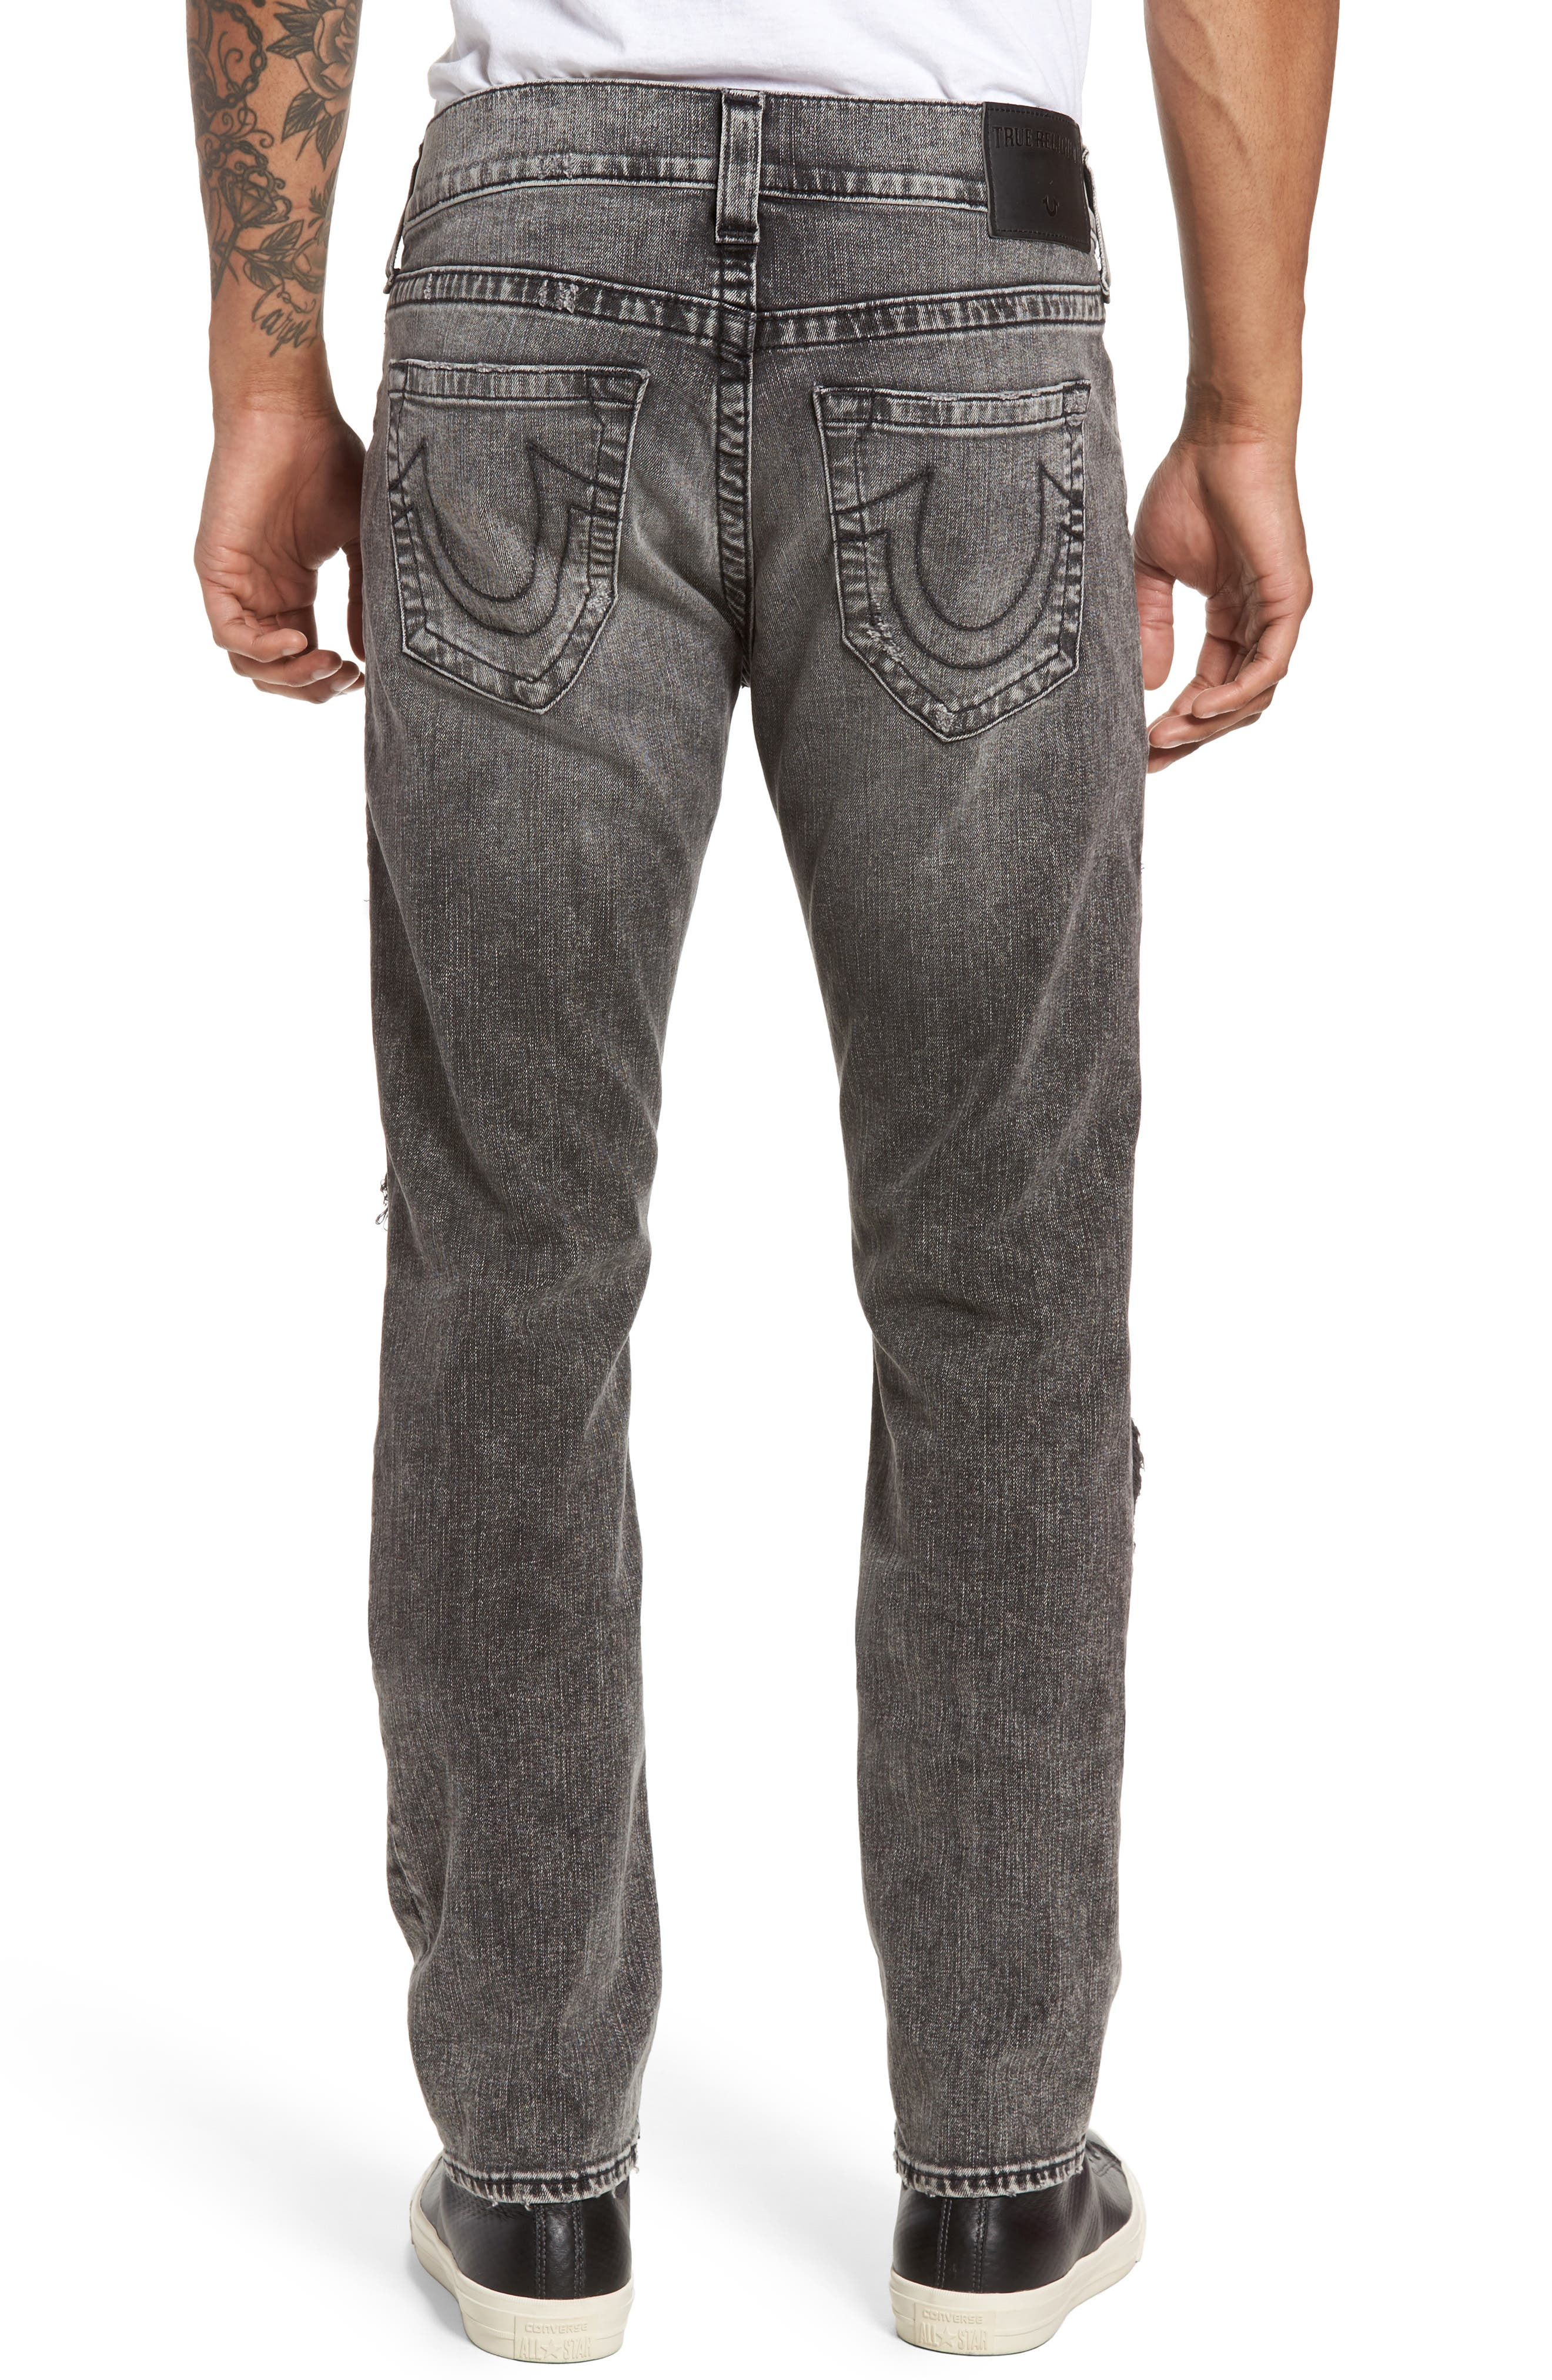 Rocco Skinny Fit Jeans,                             Alternate thumbnail 2, color,                             408